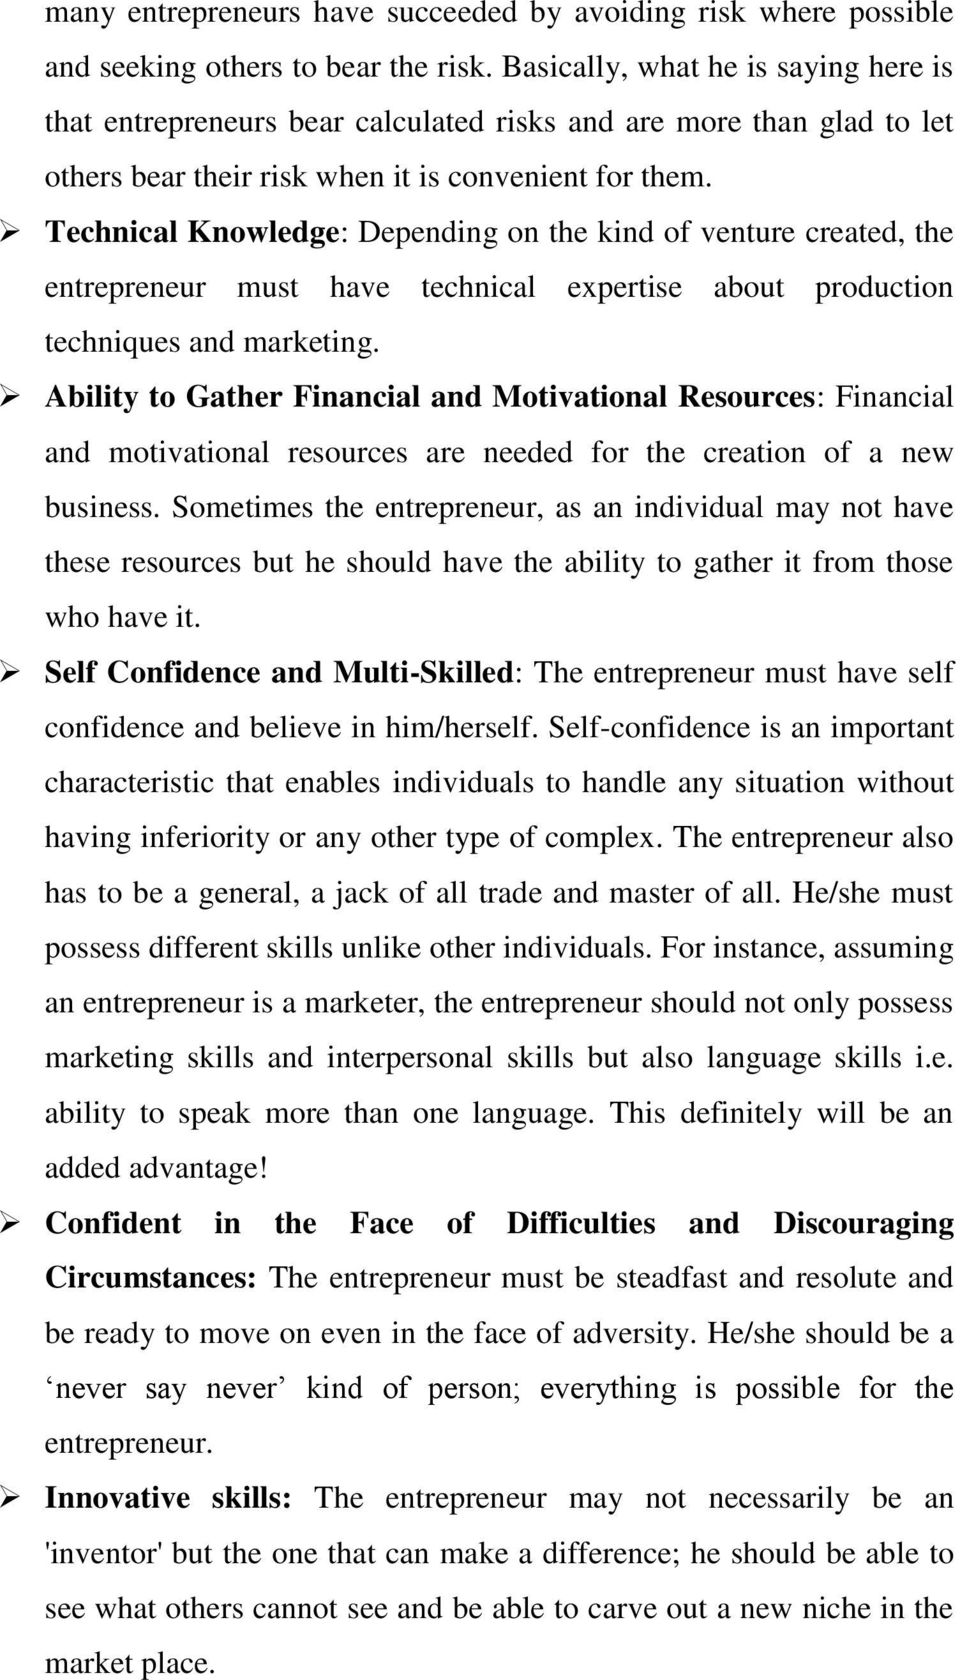 Module one theory and concept of entrepreneurship studies learning technical knowledge depending on the kind of venture created the entrepreneur must have technical fandeluxe Images